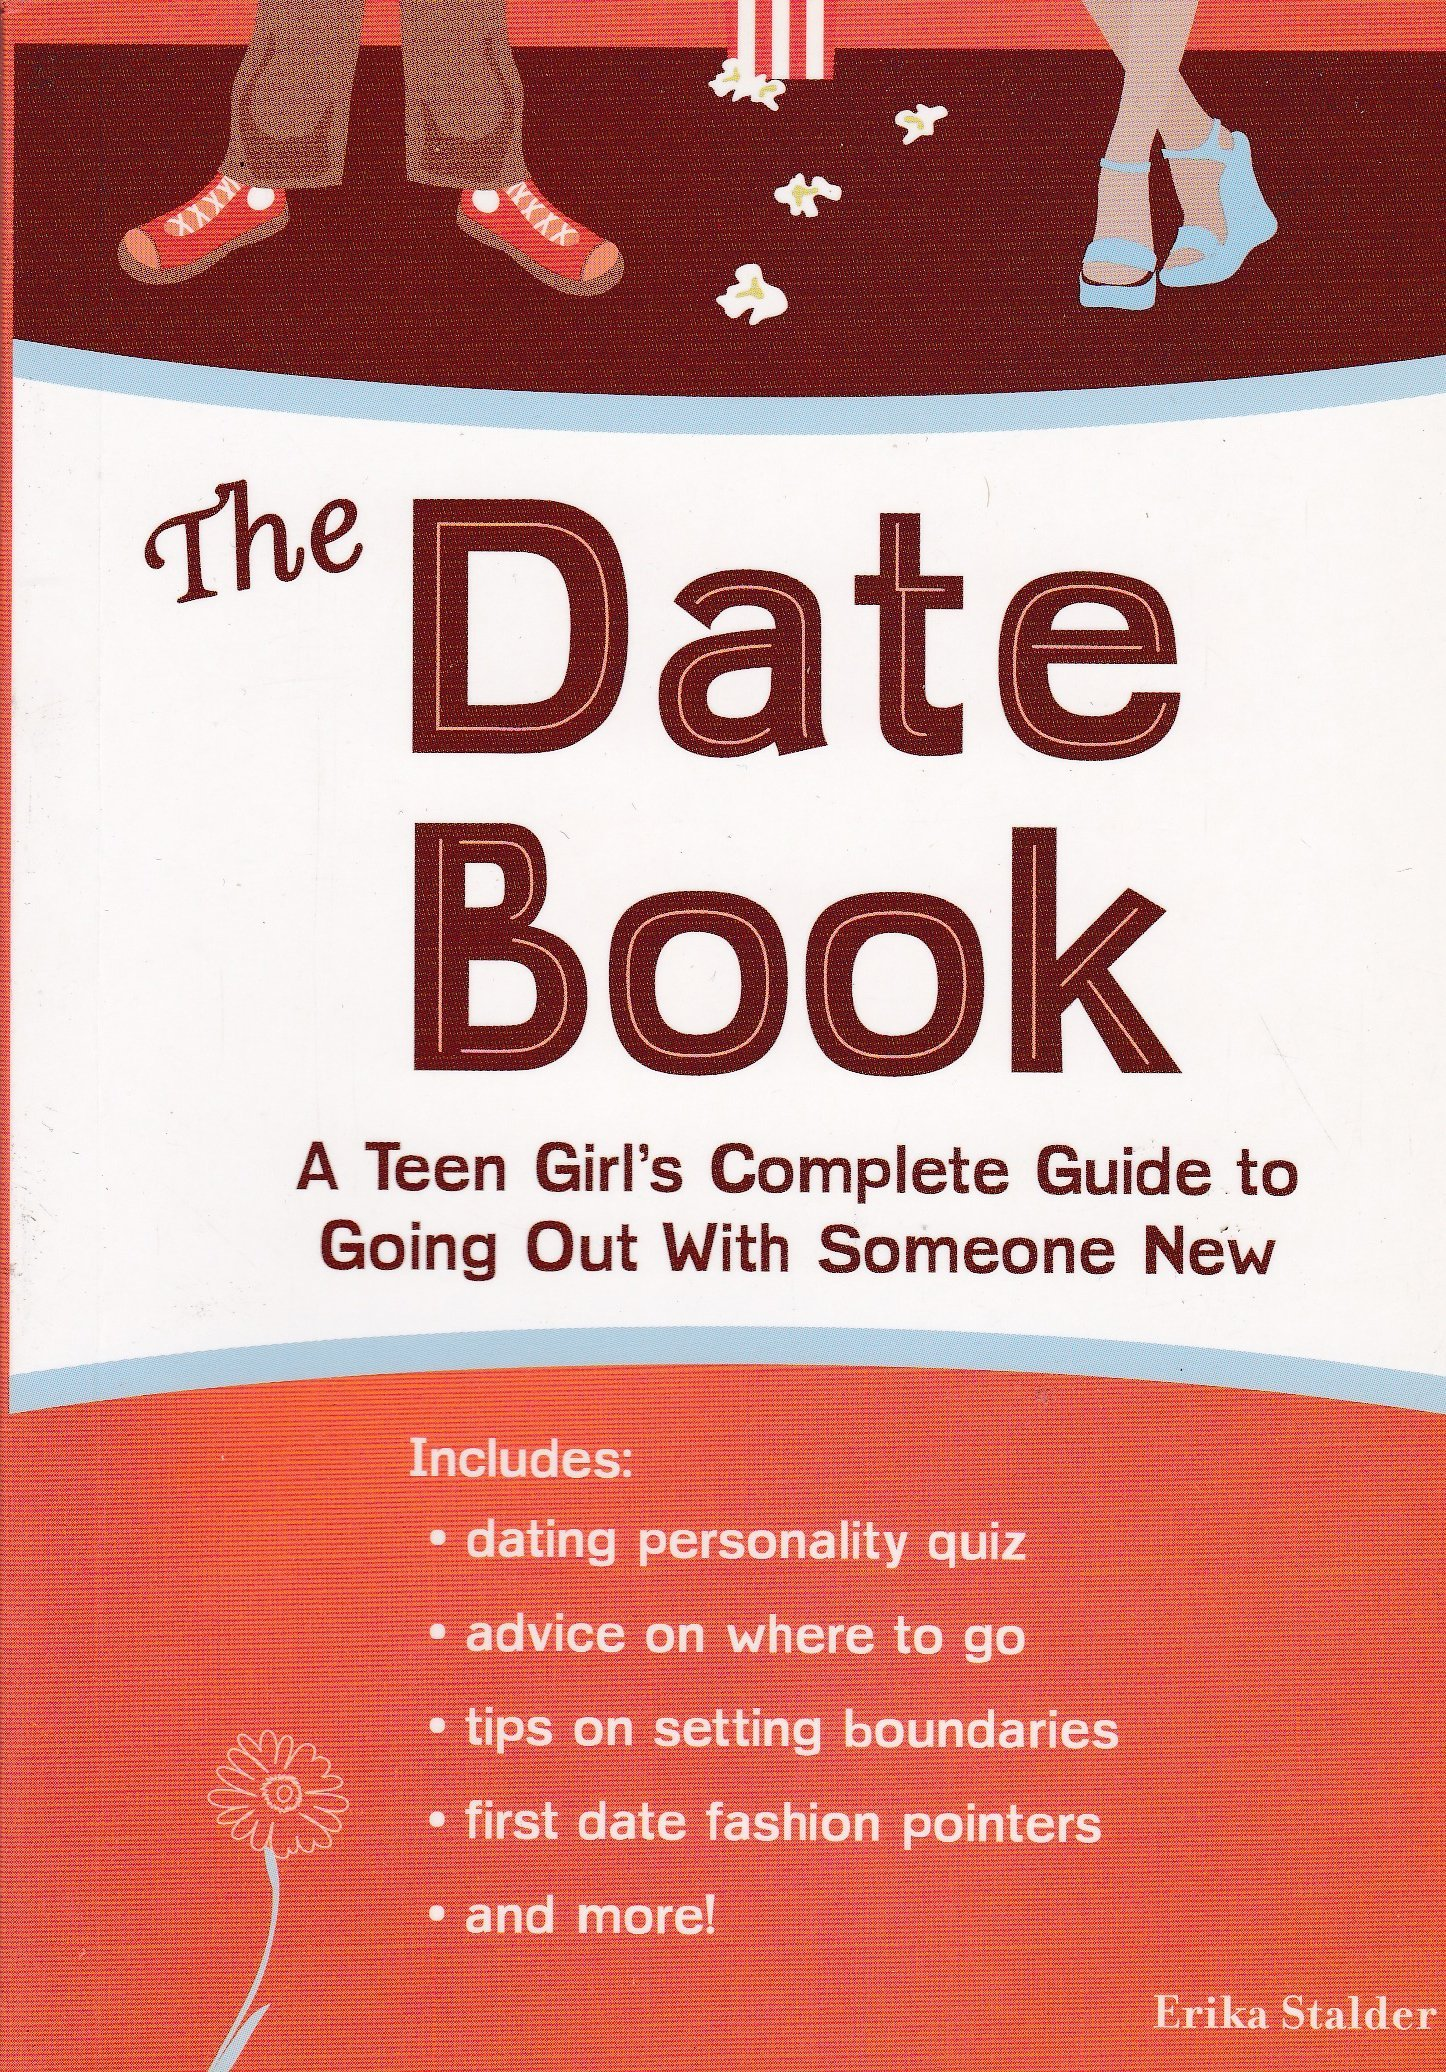 Tips for dating someone new